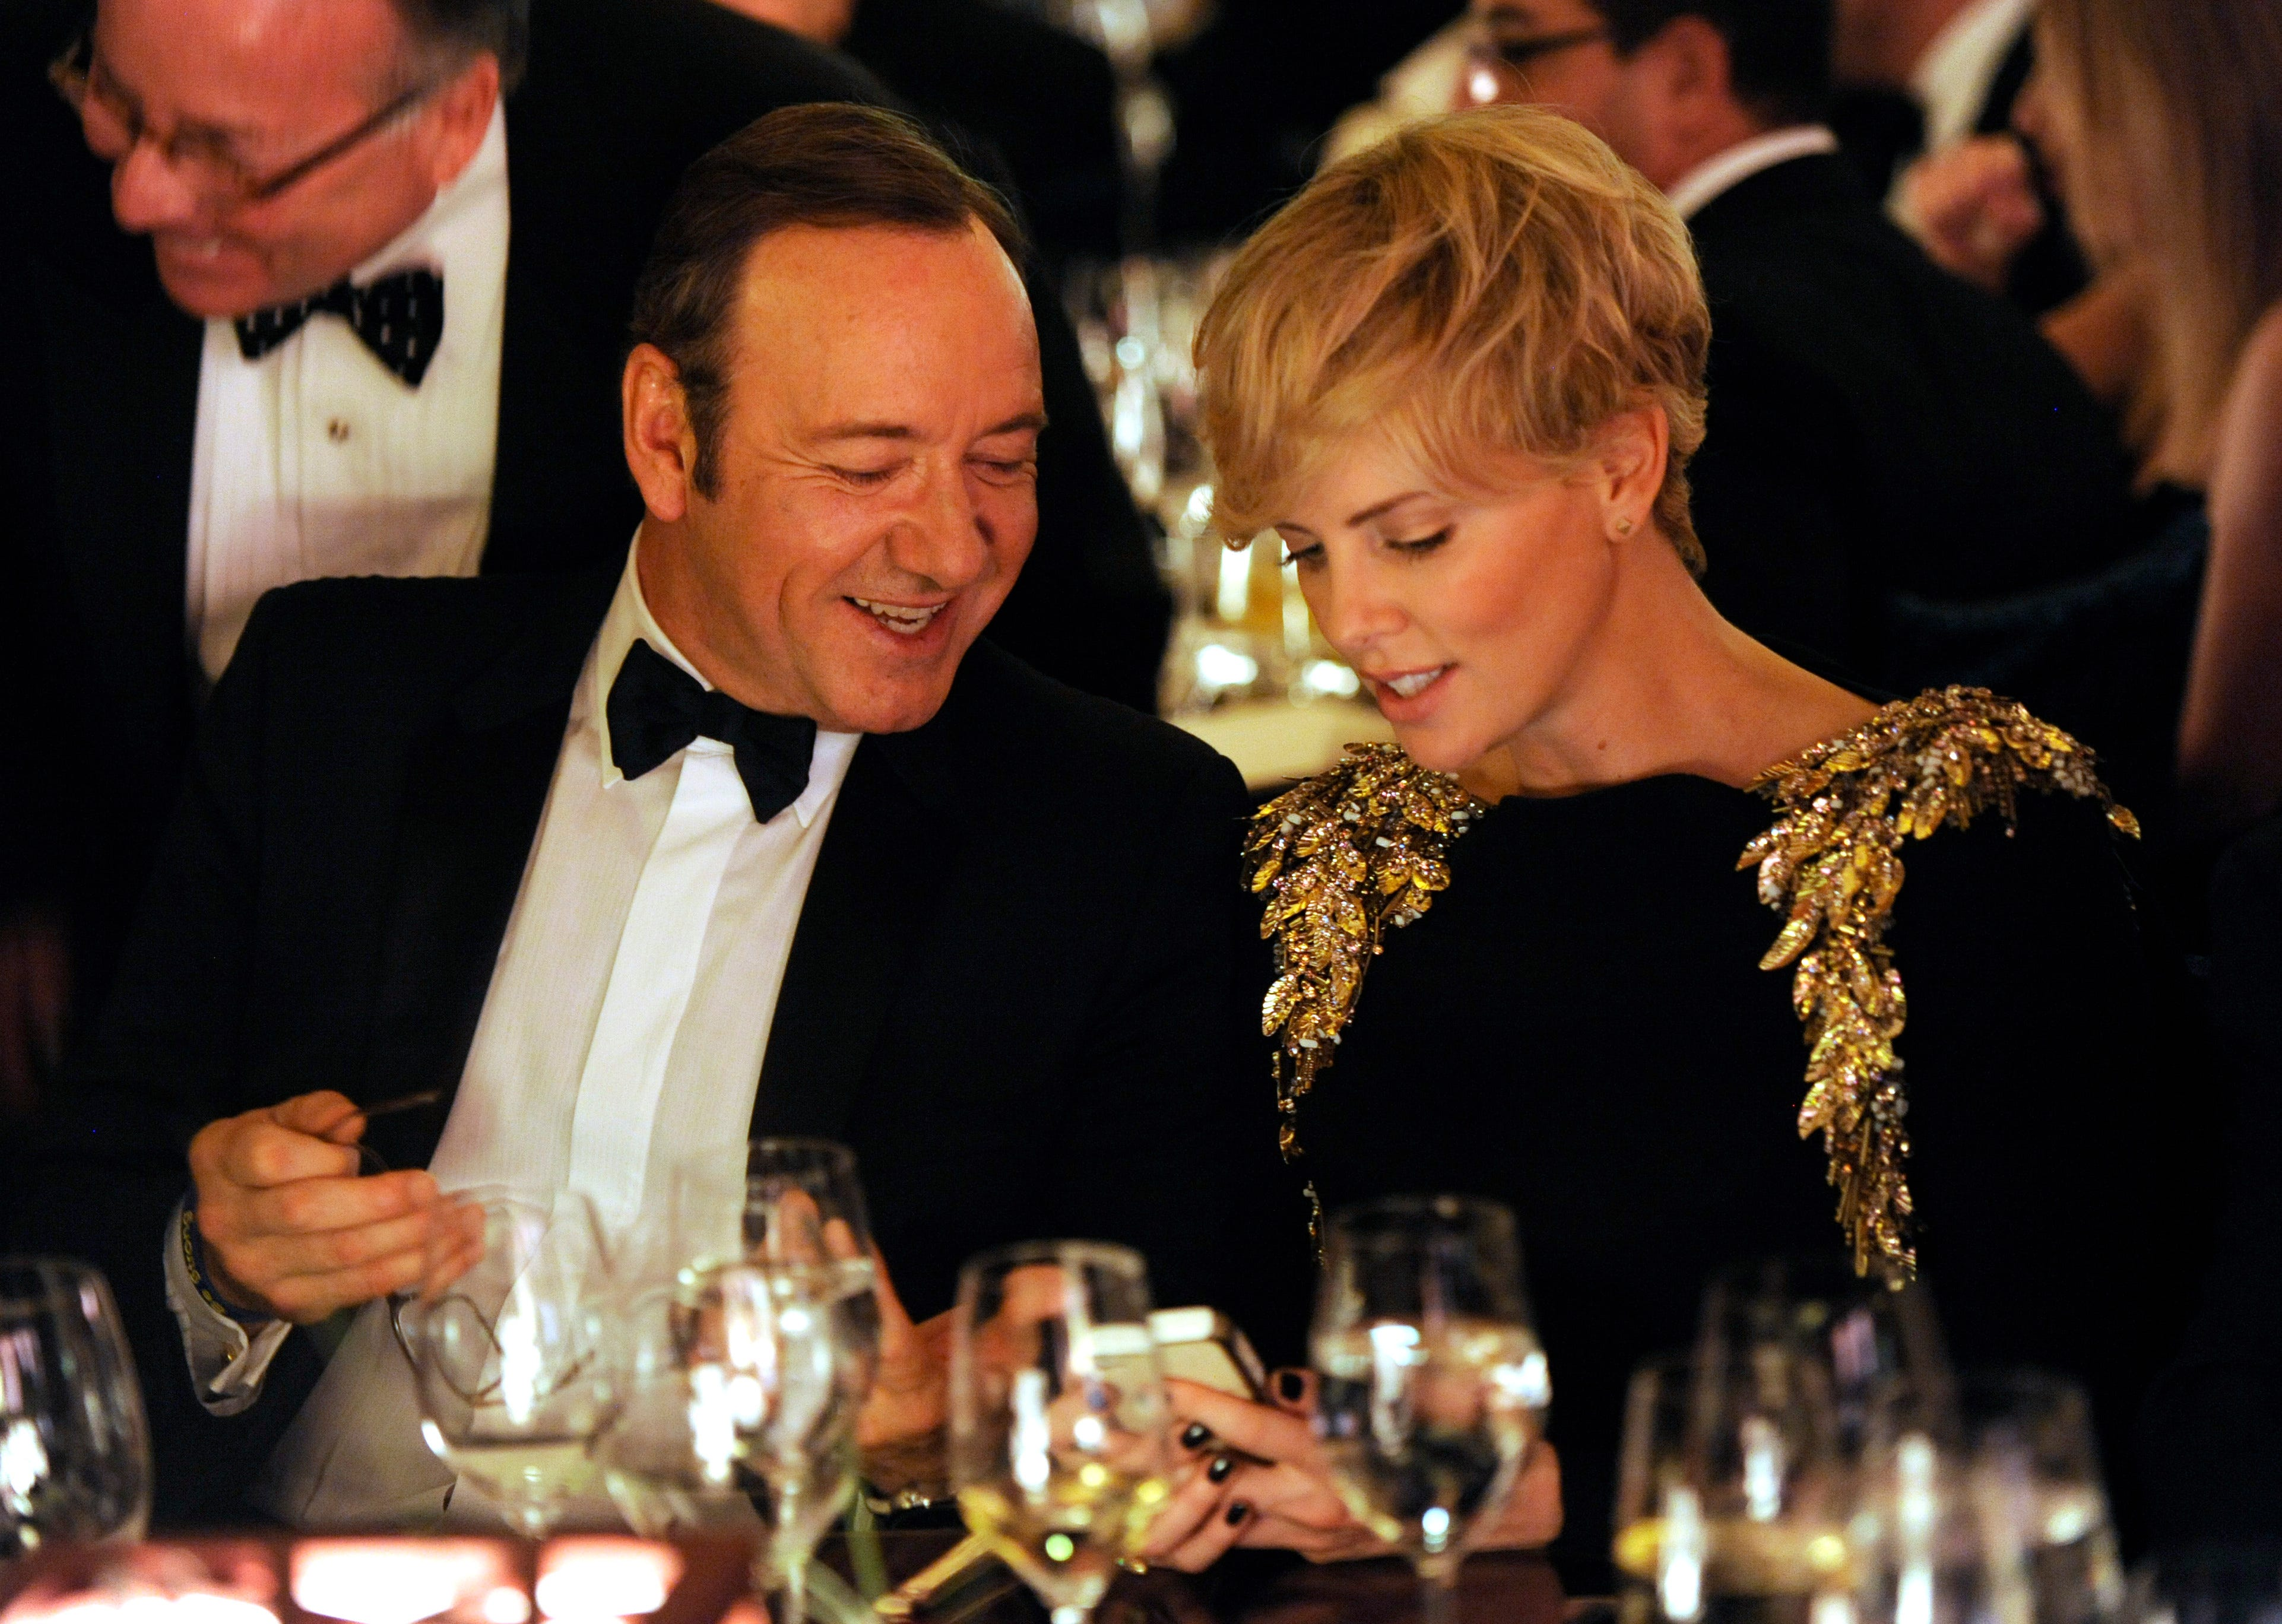 Actors Kevin Spacey, left, and Charlize Theron attend